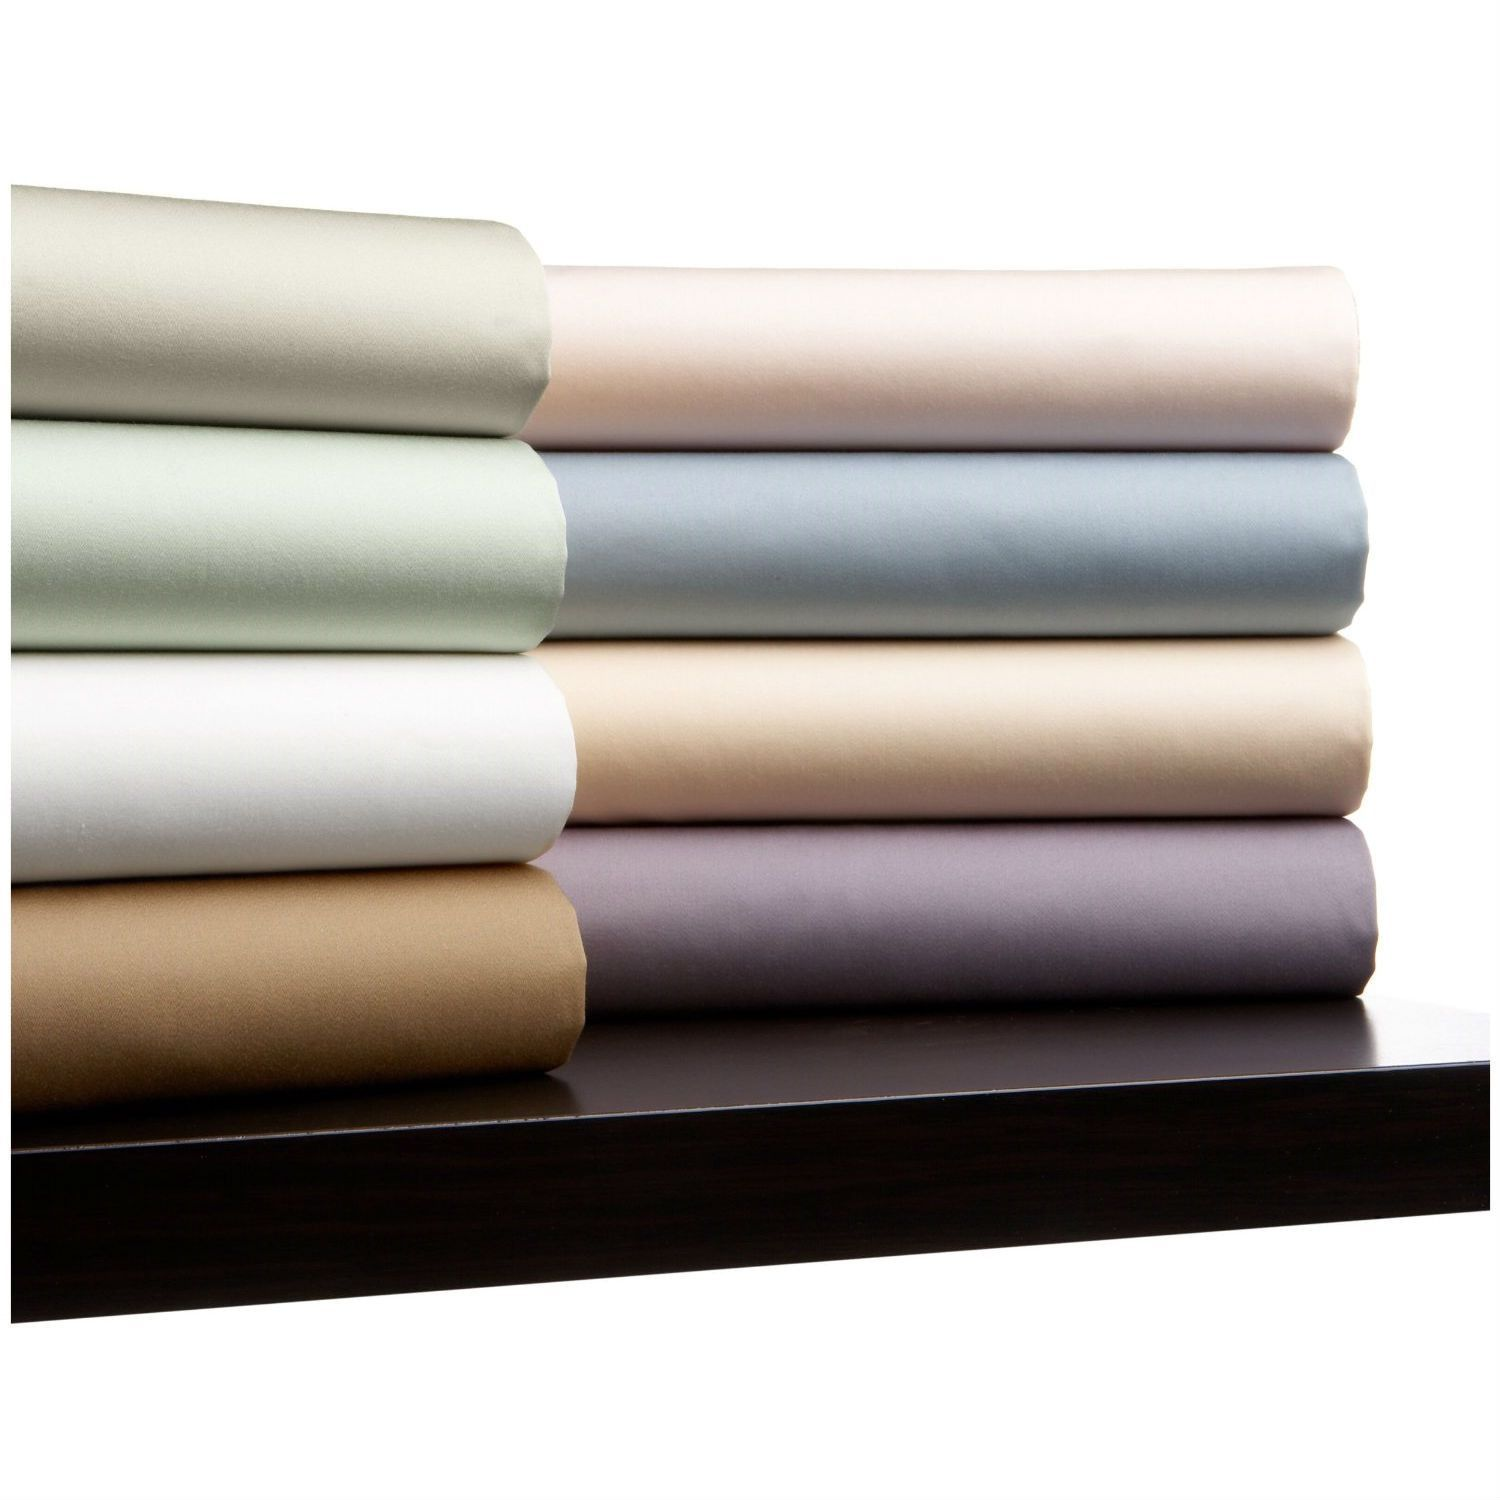 King size 400Thread Count Egyptian Cotton Sheet Set in